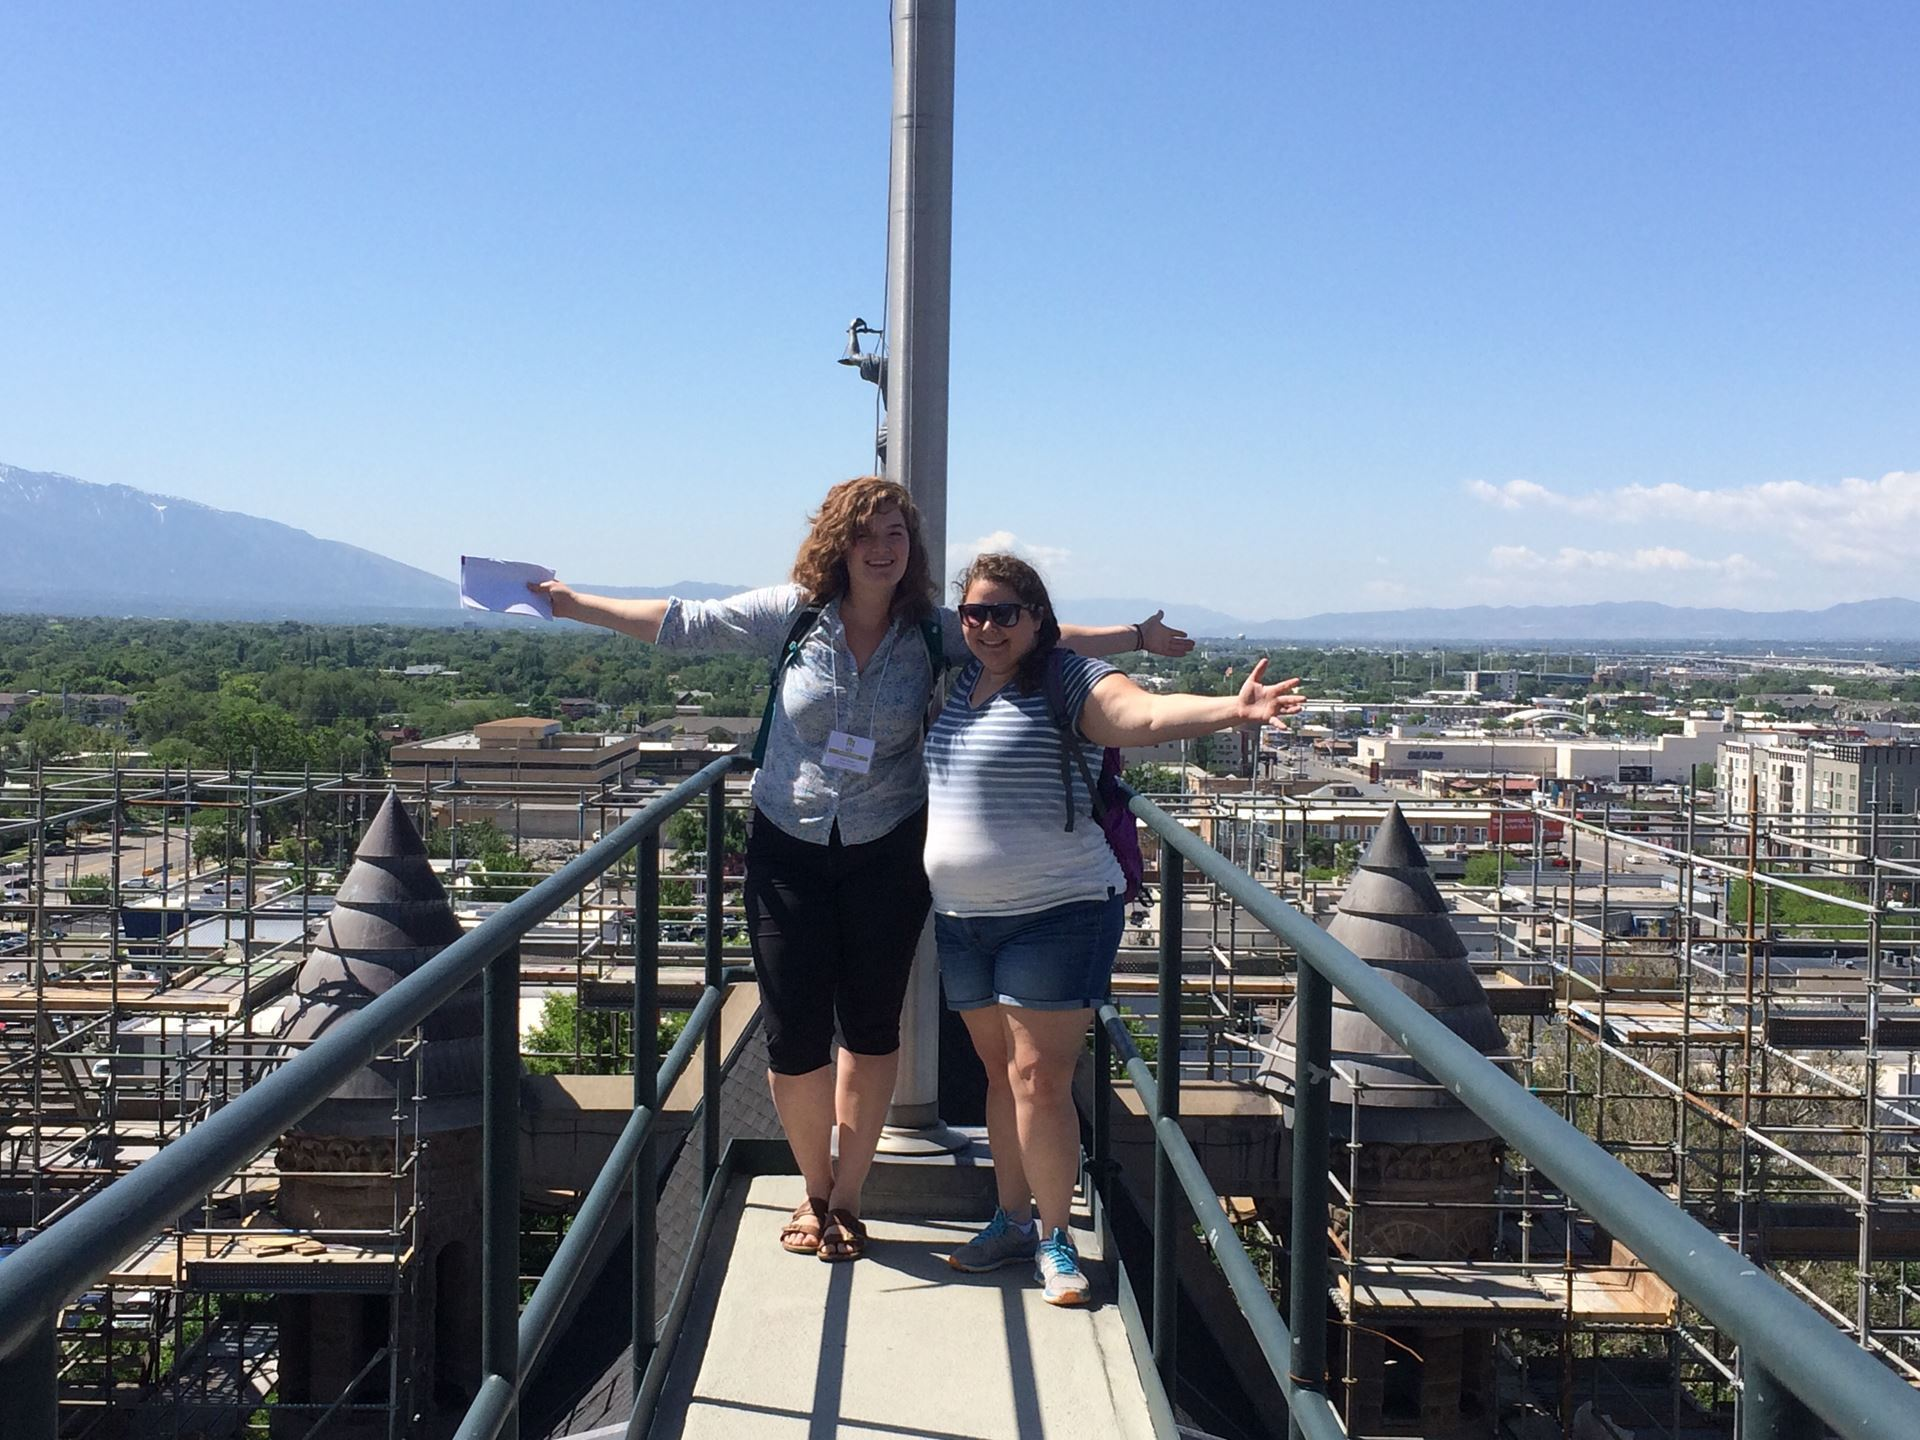 Kellyn and Emily on the top of the Salt Lake City and County Building, VAF 2017